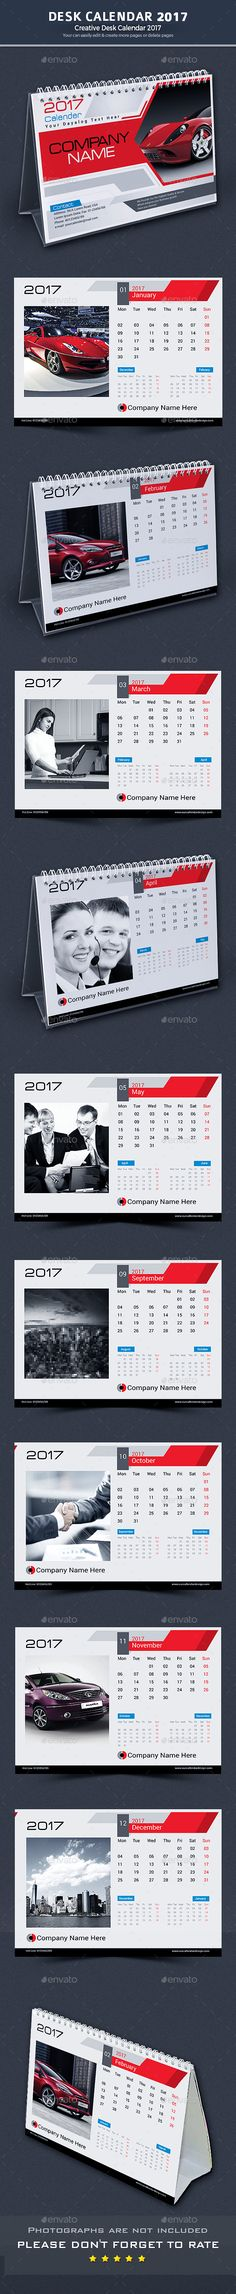 Wall Calendar Design 2016 | Calendar Design And Walls